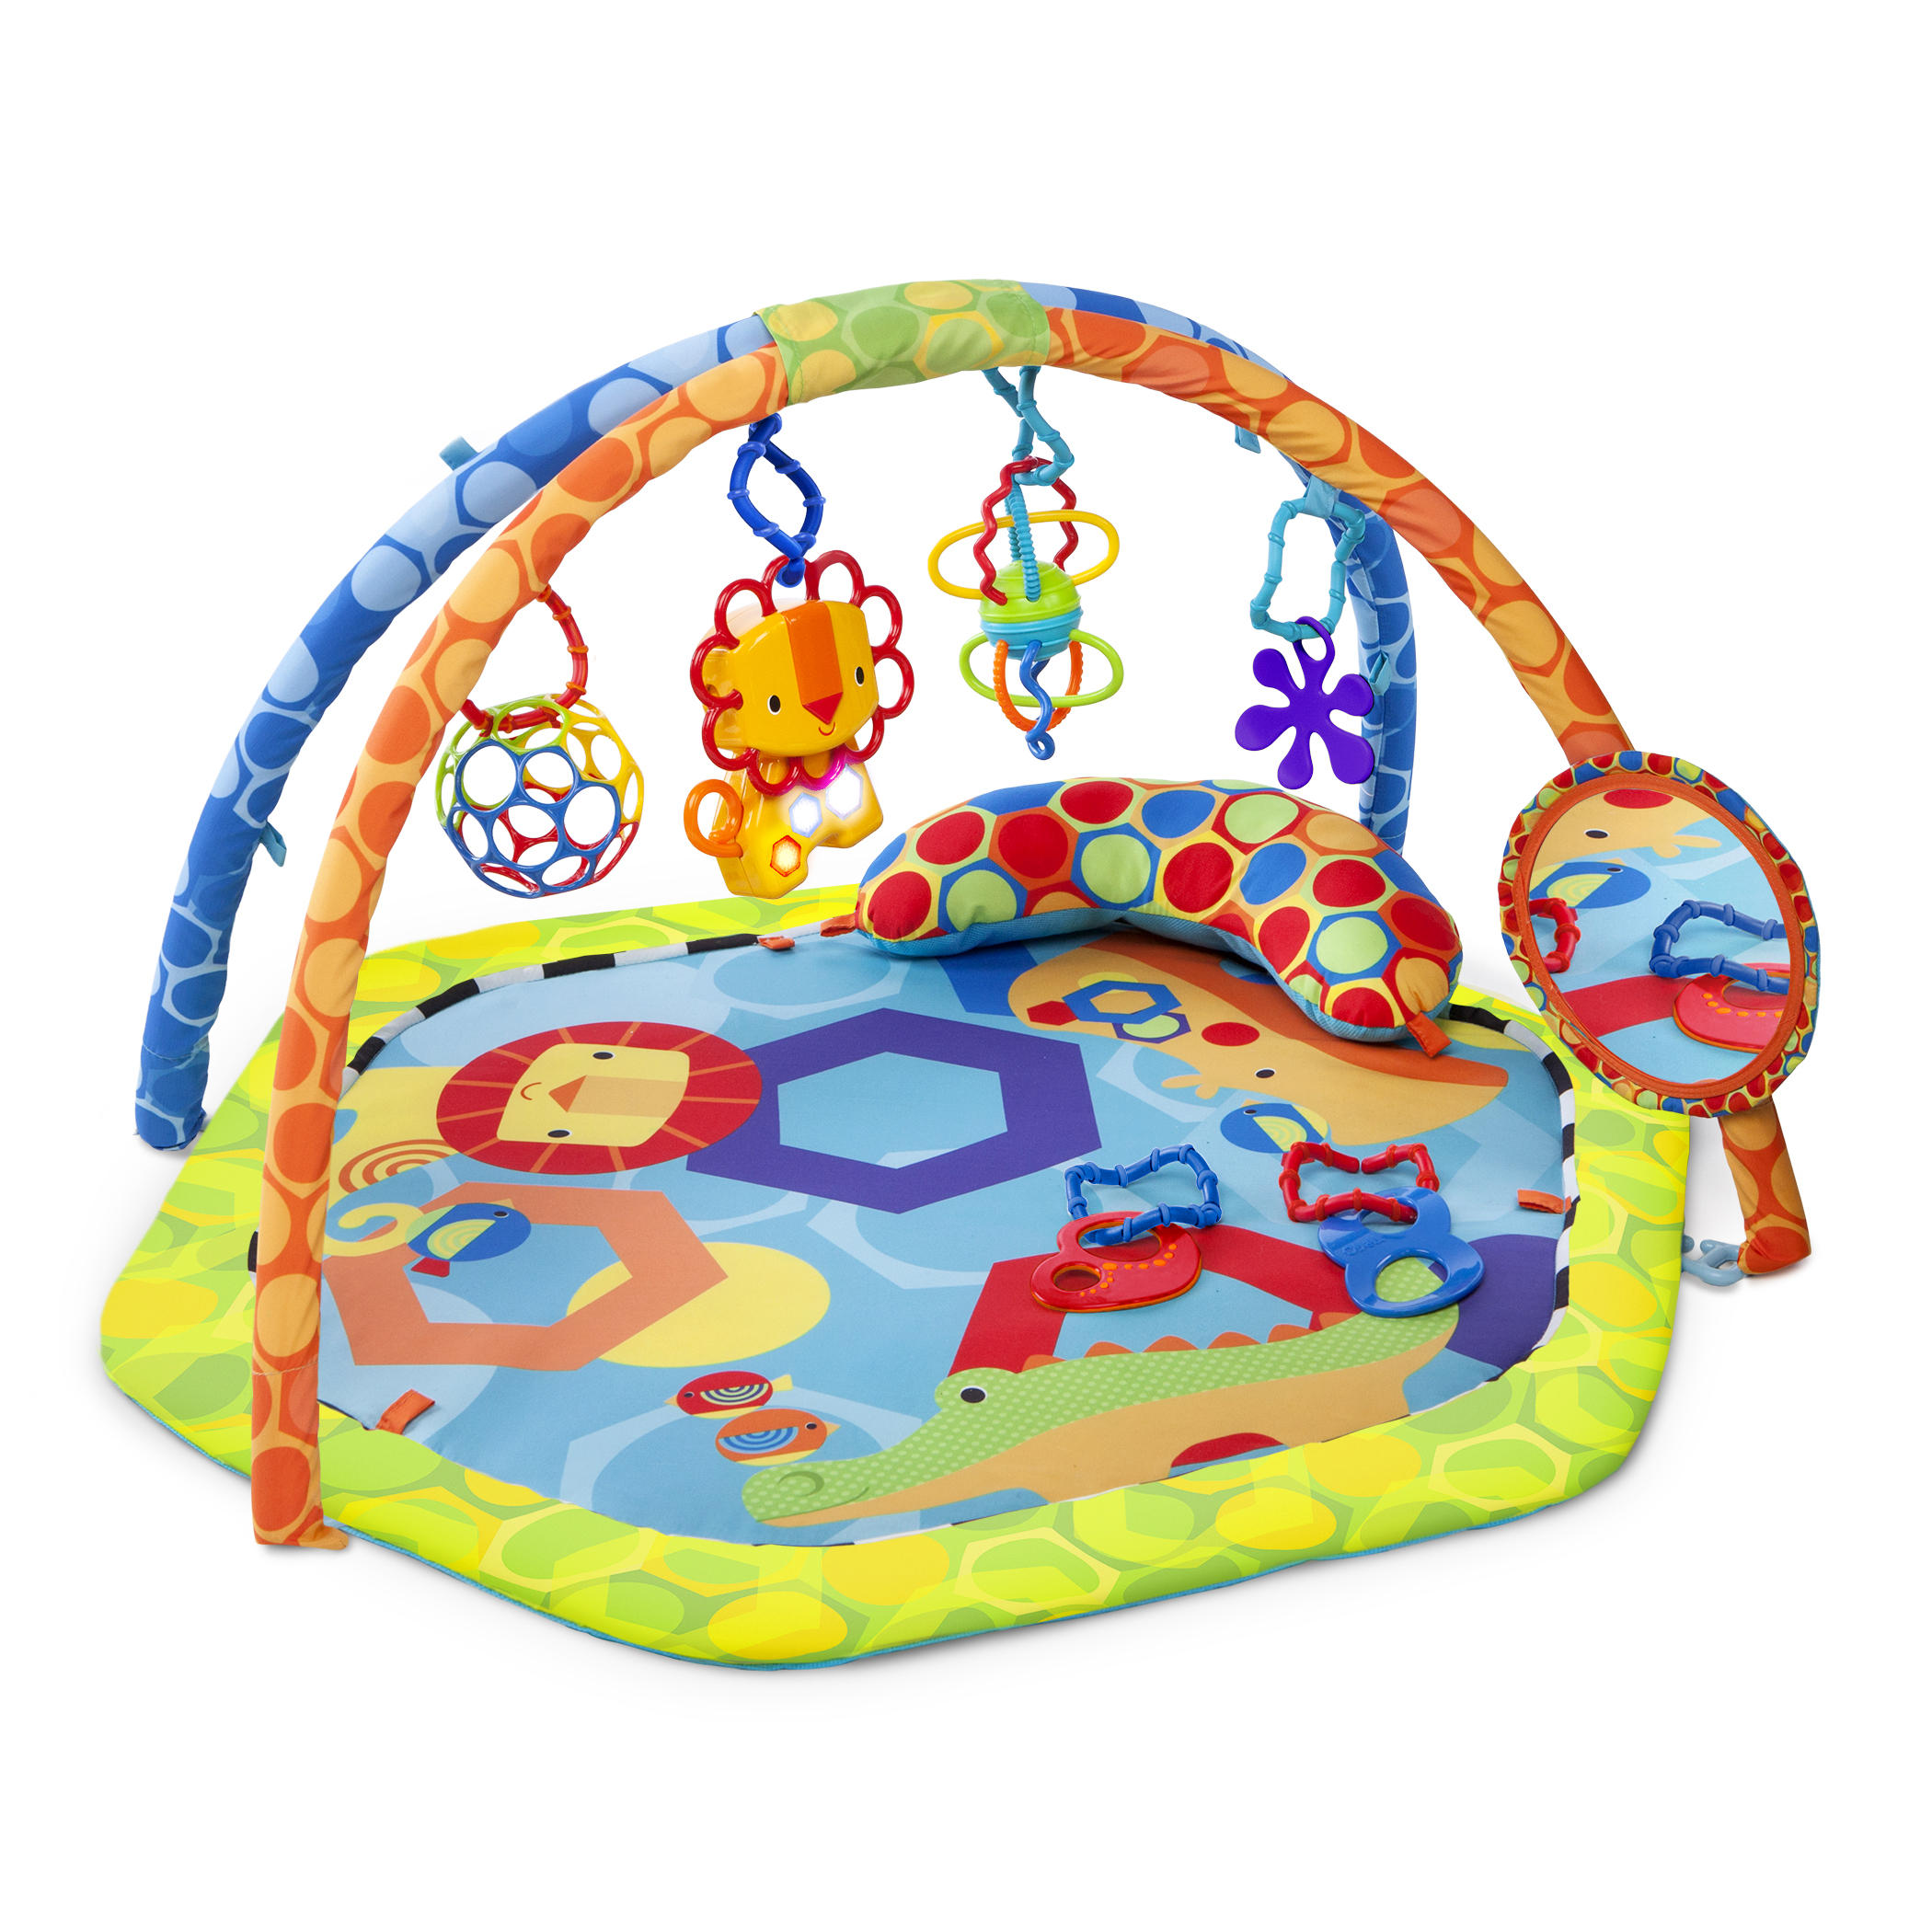 Kids II Oball Play-O-Lot Activity Gym